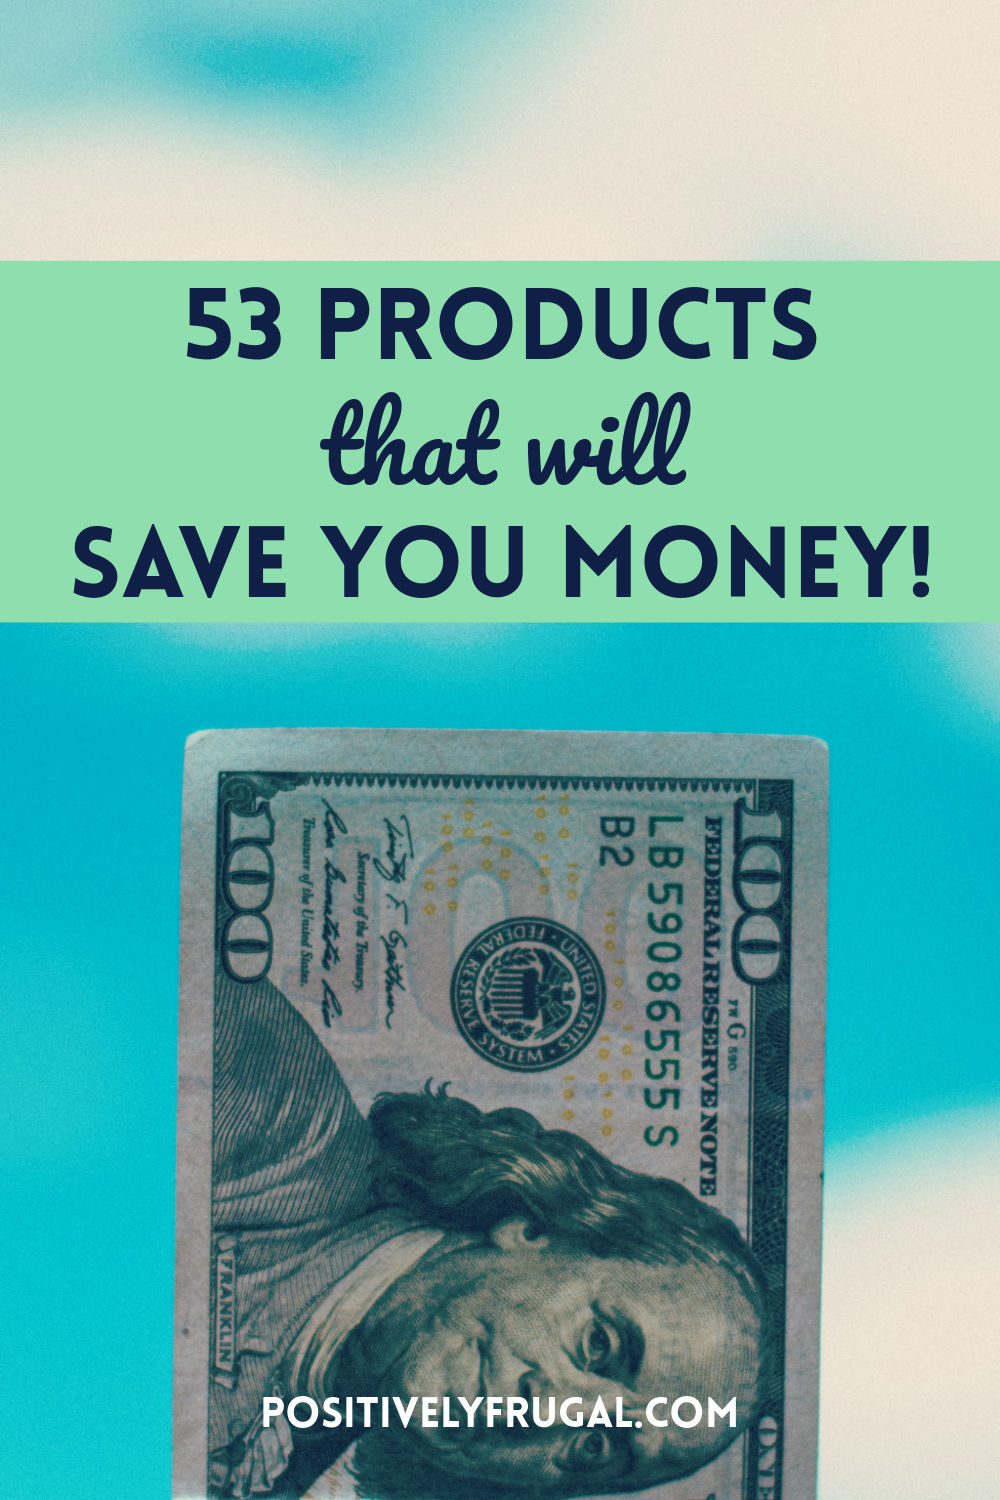 Products that will Save Money by PositivelyFrugal.com